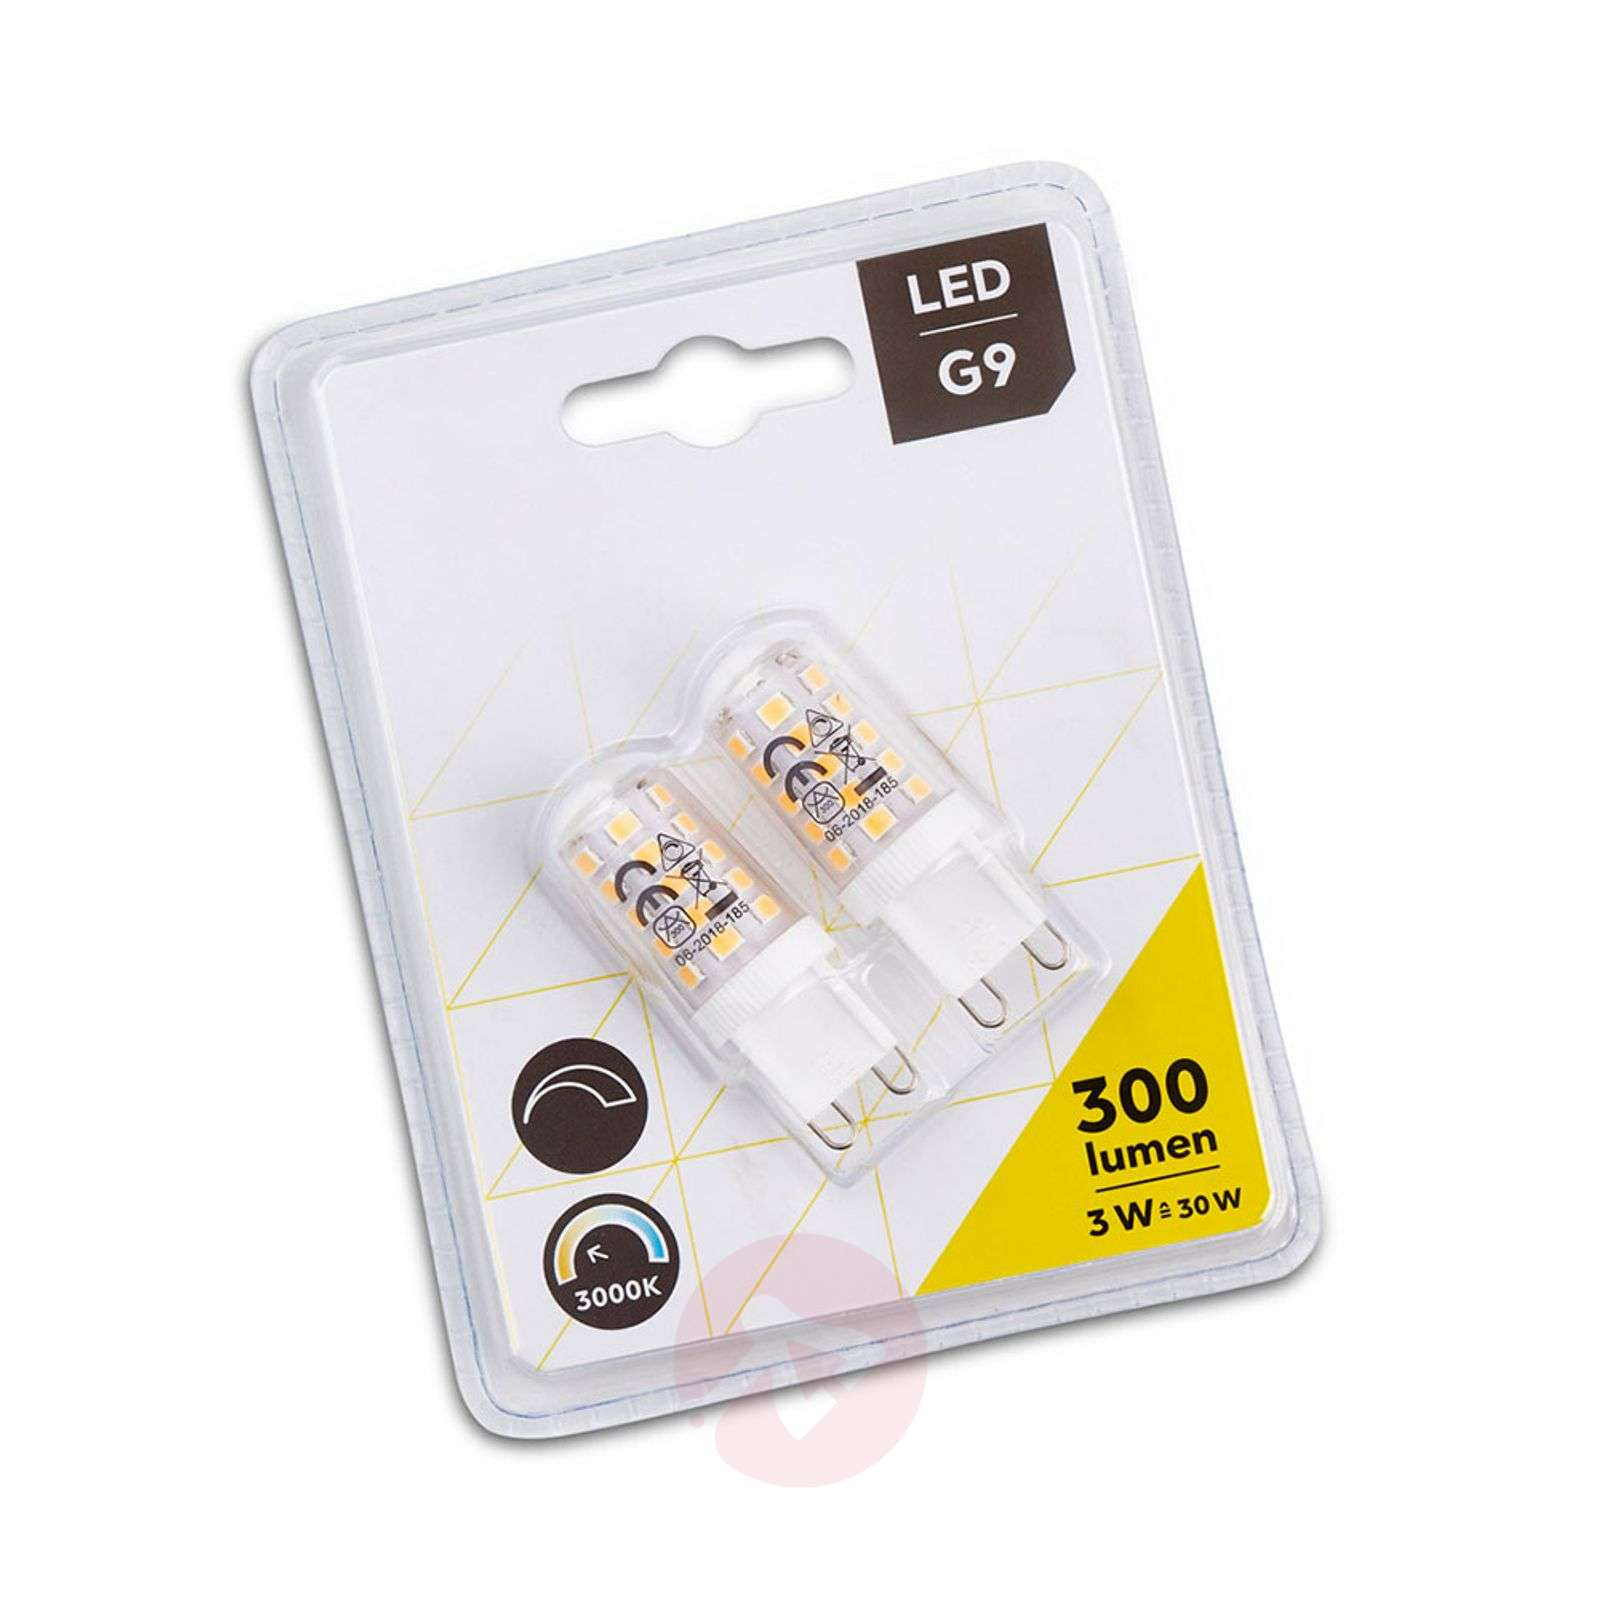 Bombilla LED bi-pin G9 3W en set doble-9004813-01